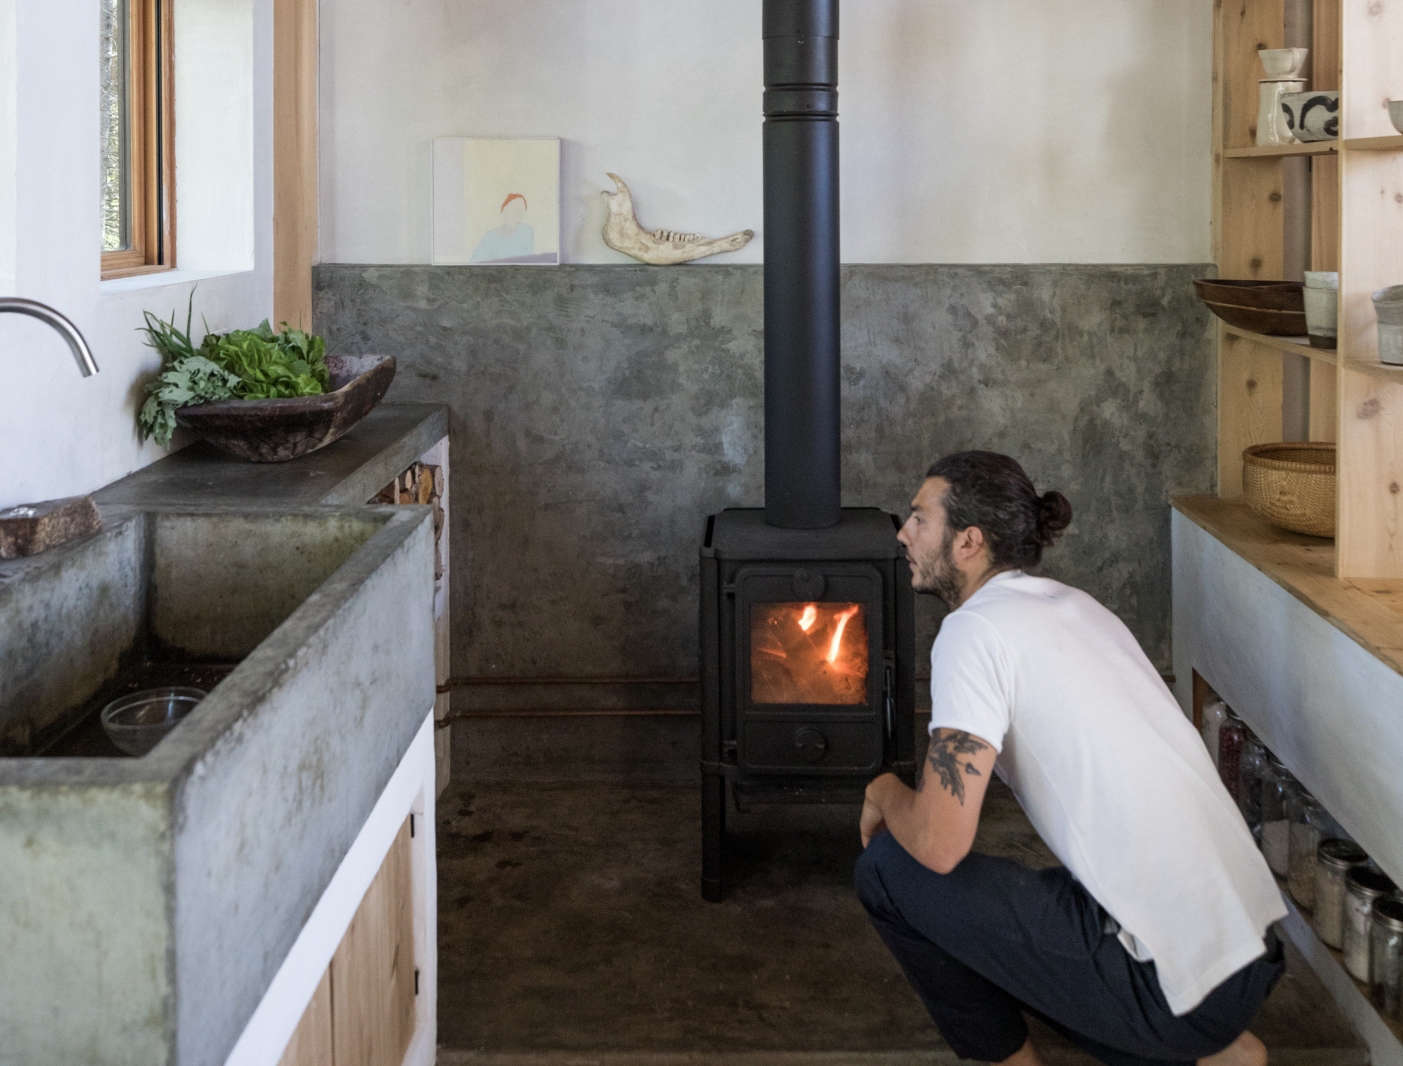 anthony esteves in soot house kitchen with sink greta rybus cover image cropped 1403x1066